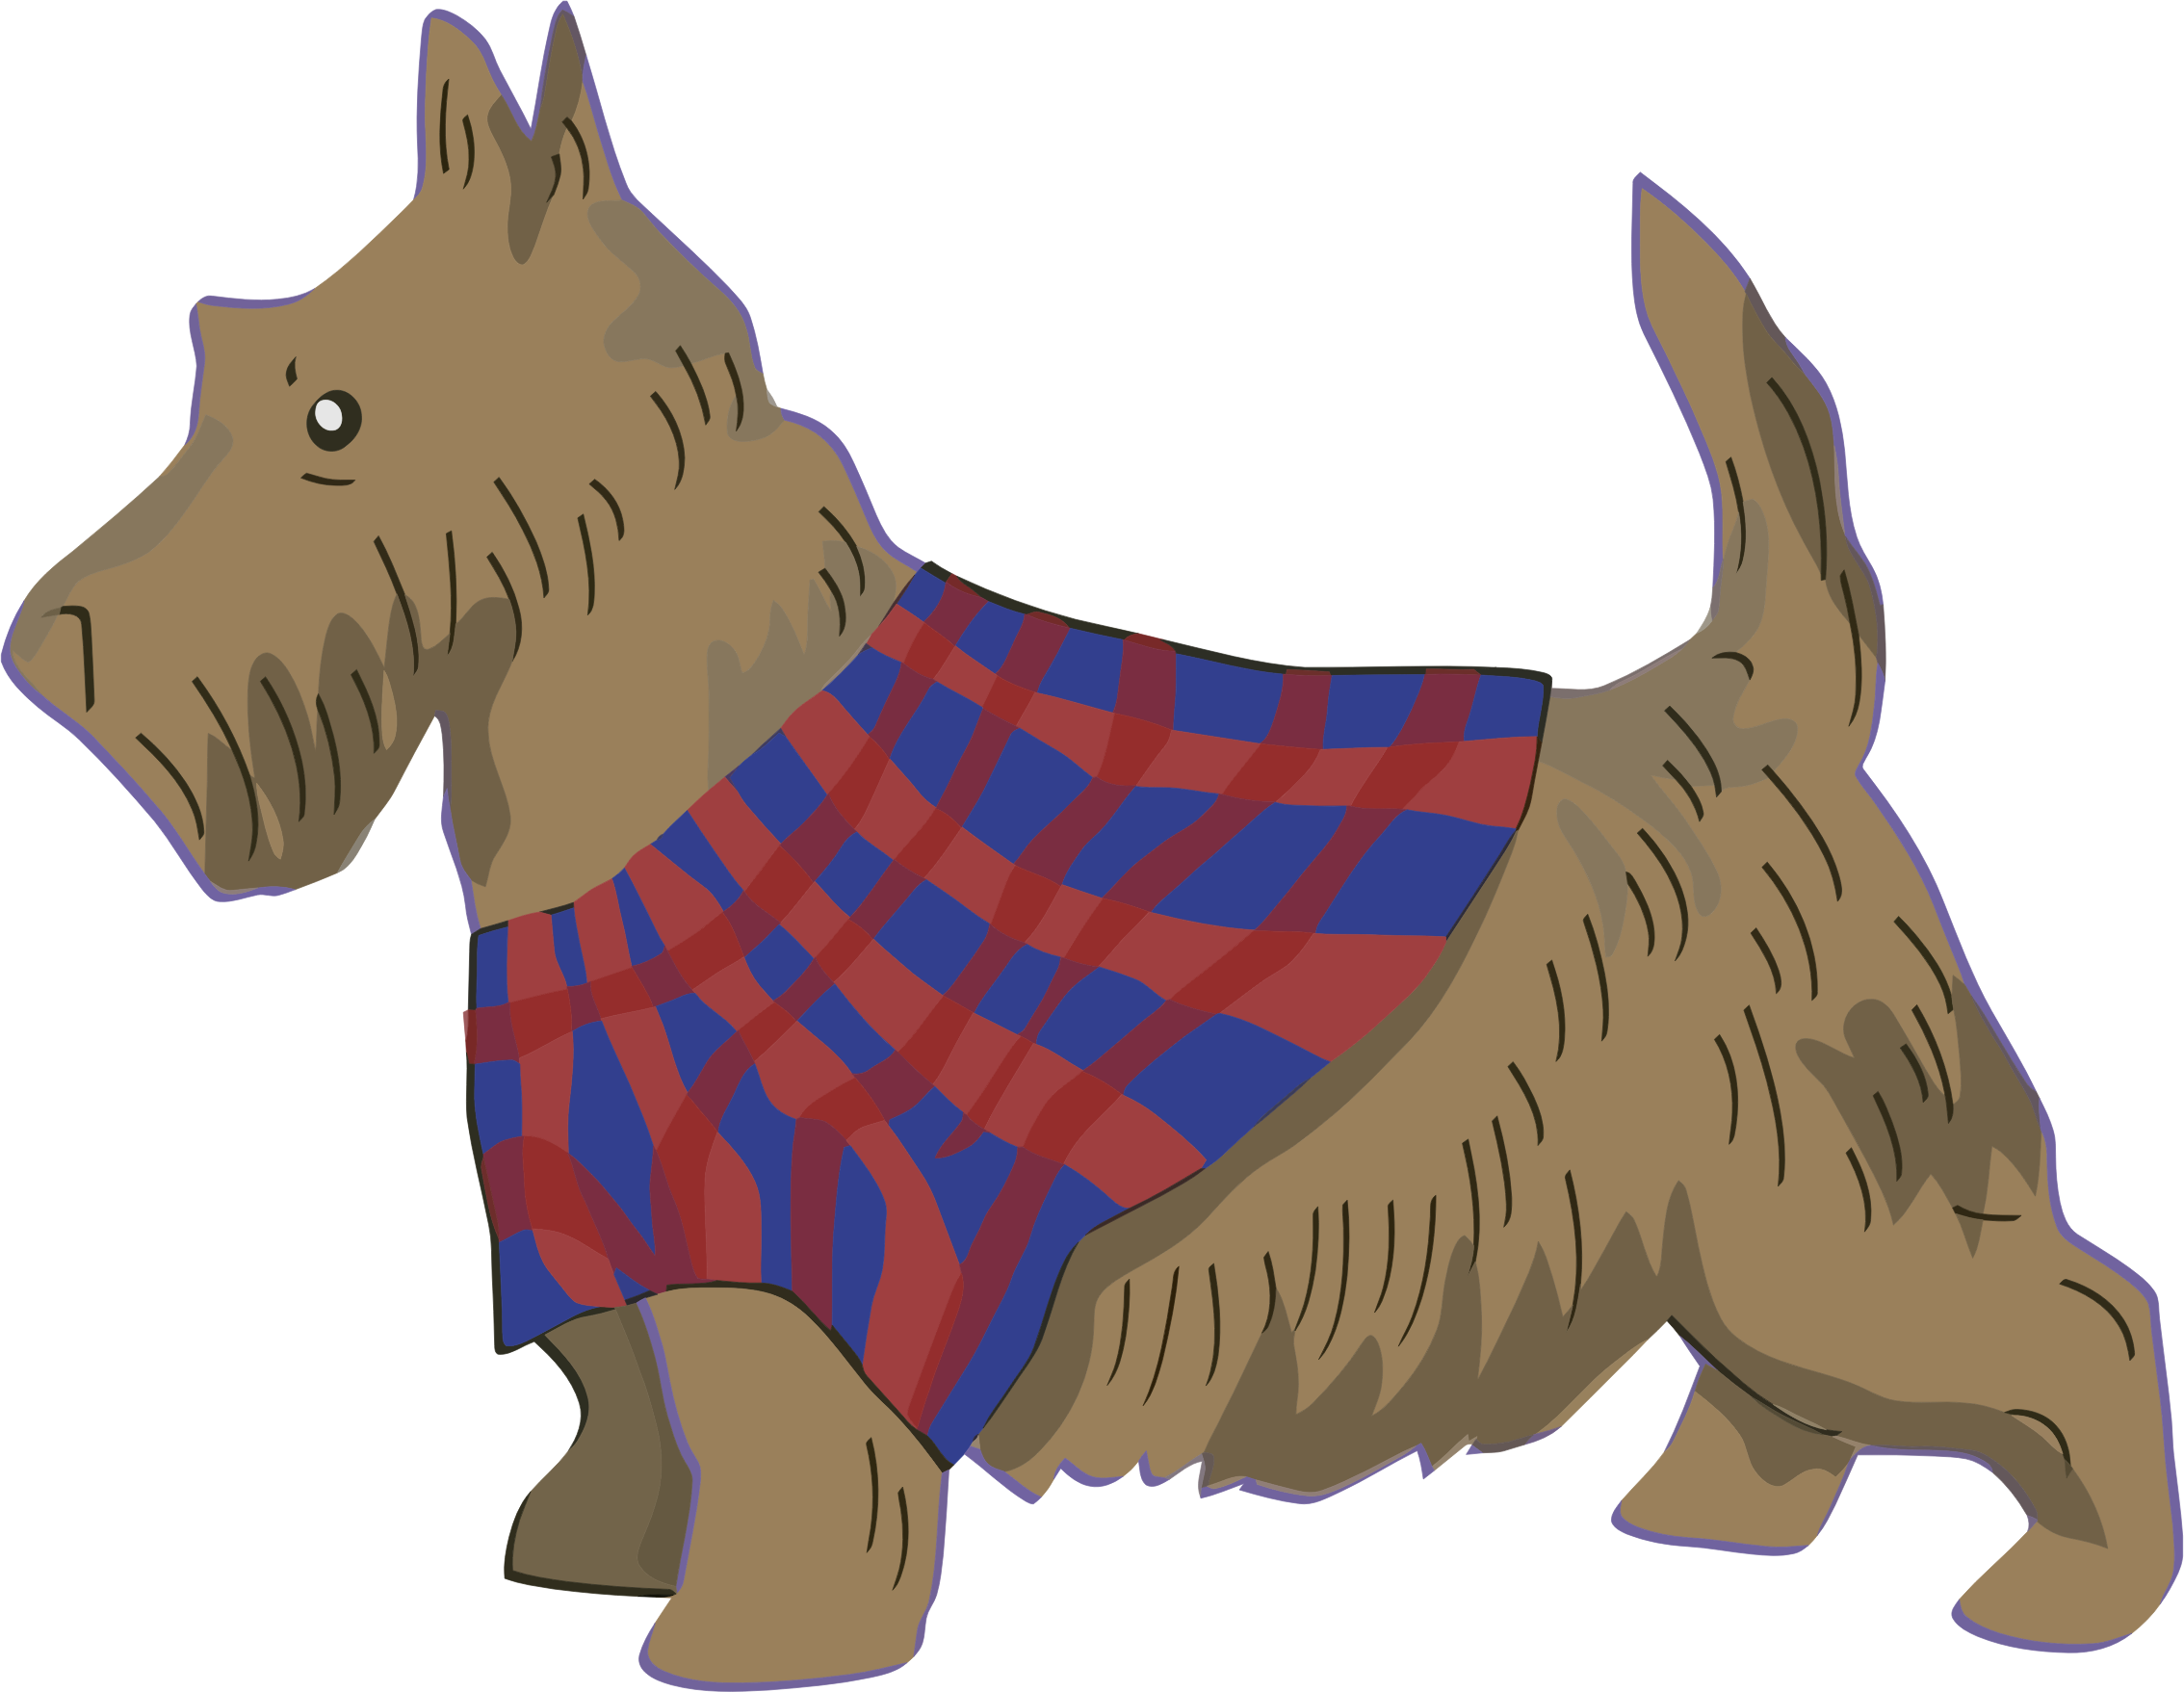 Scottish Terrier by GDJ